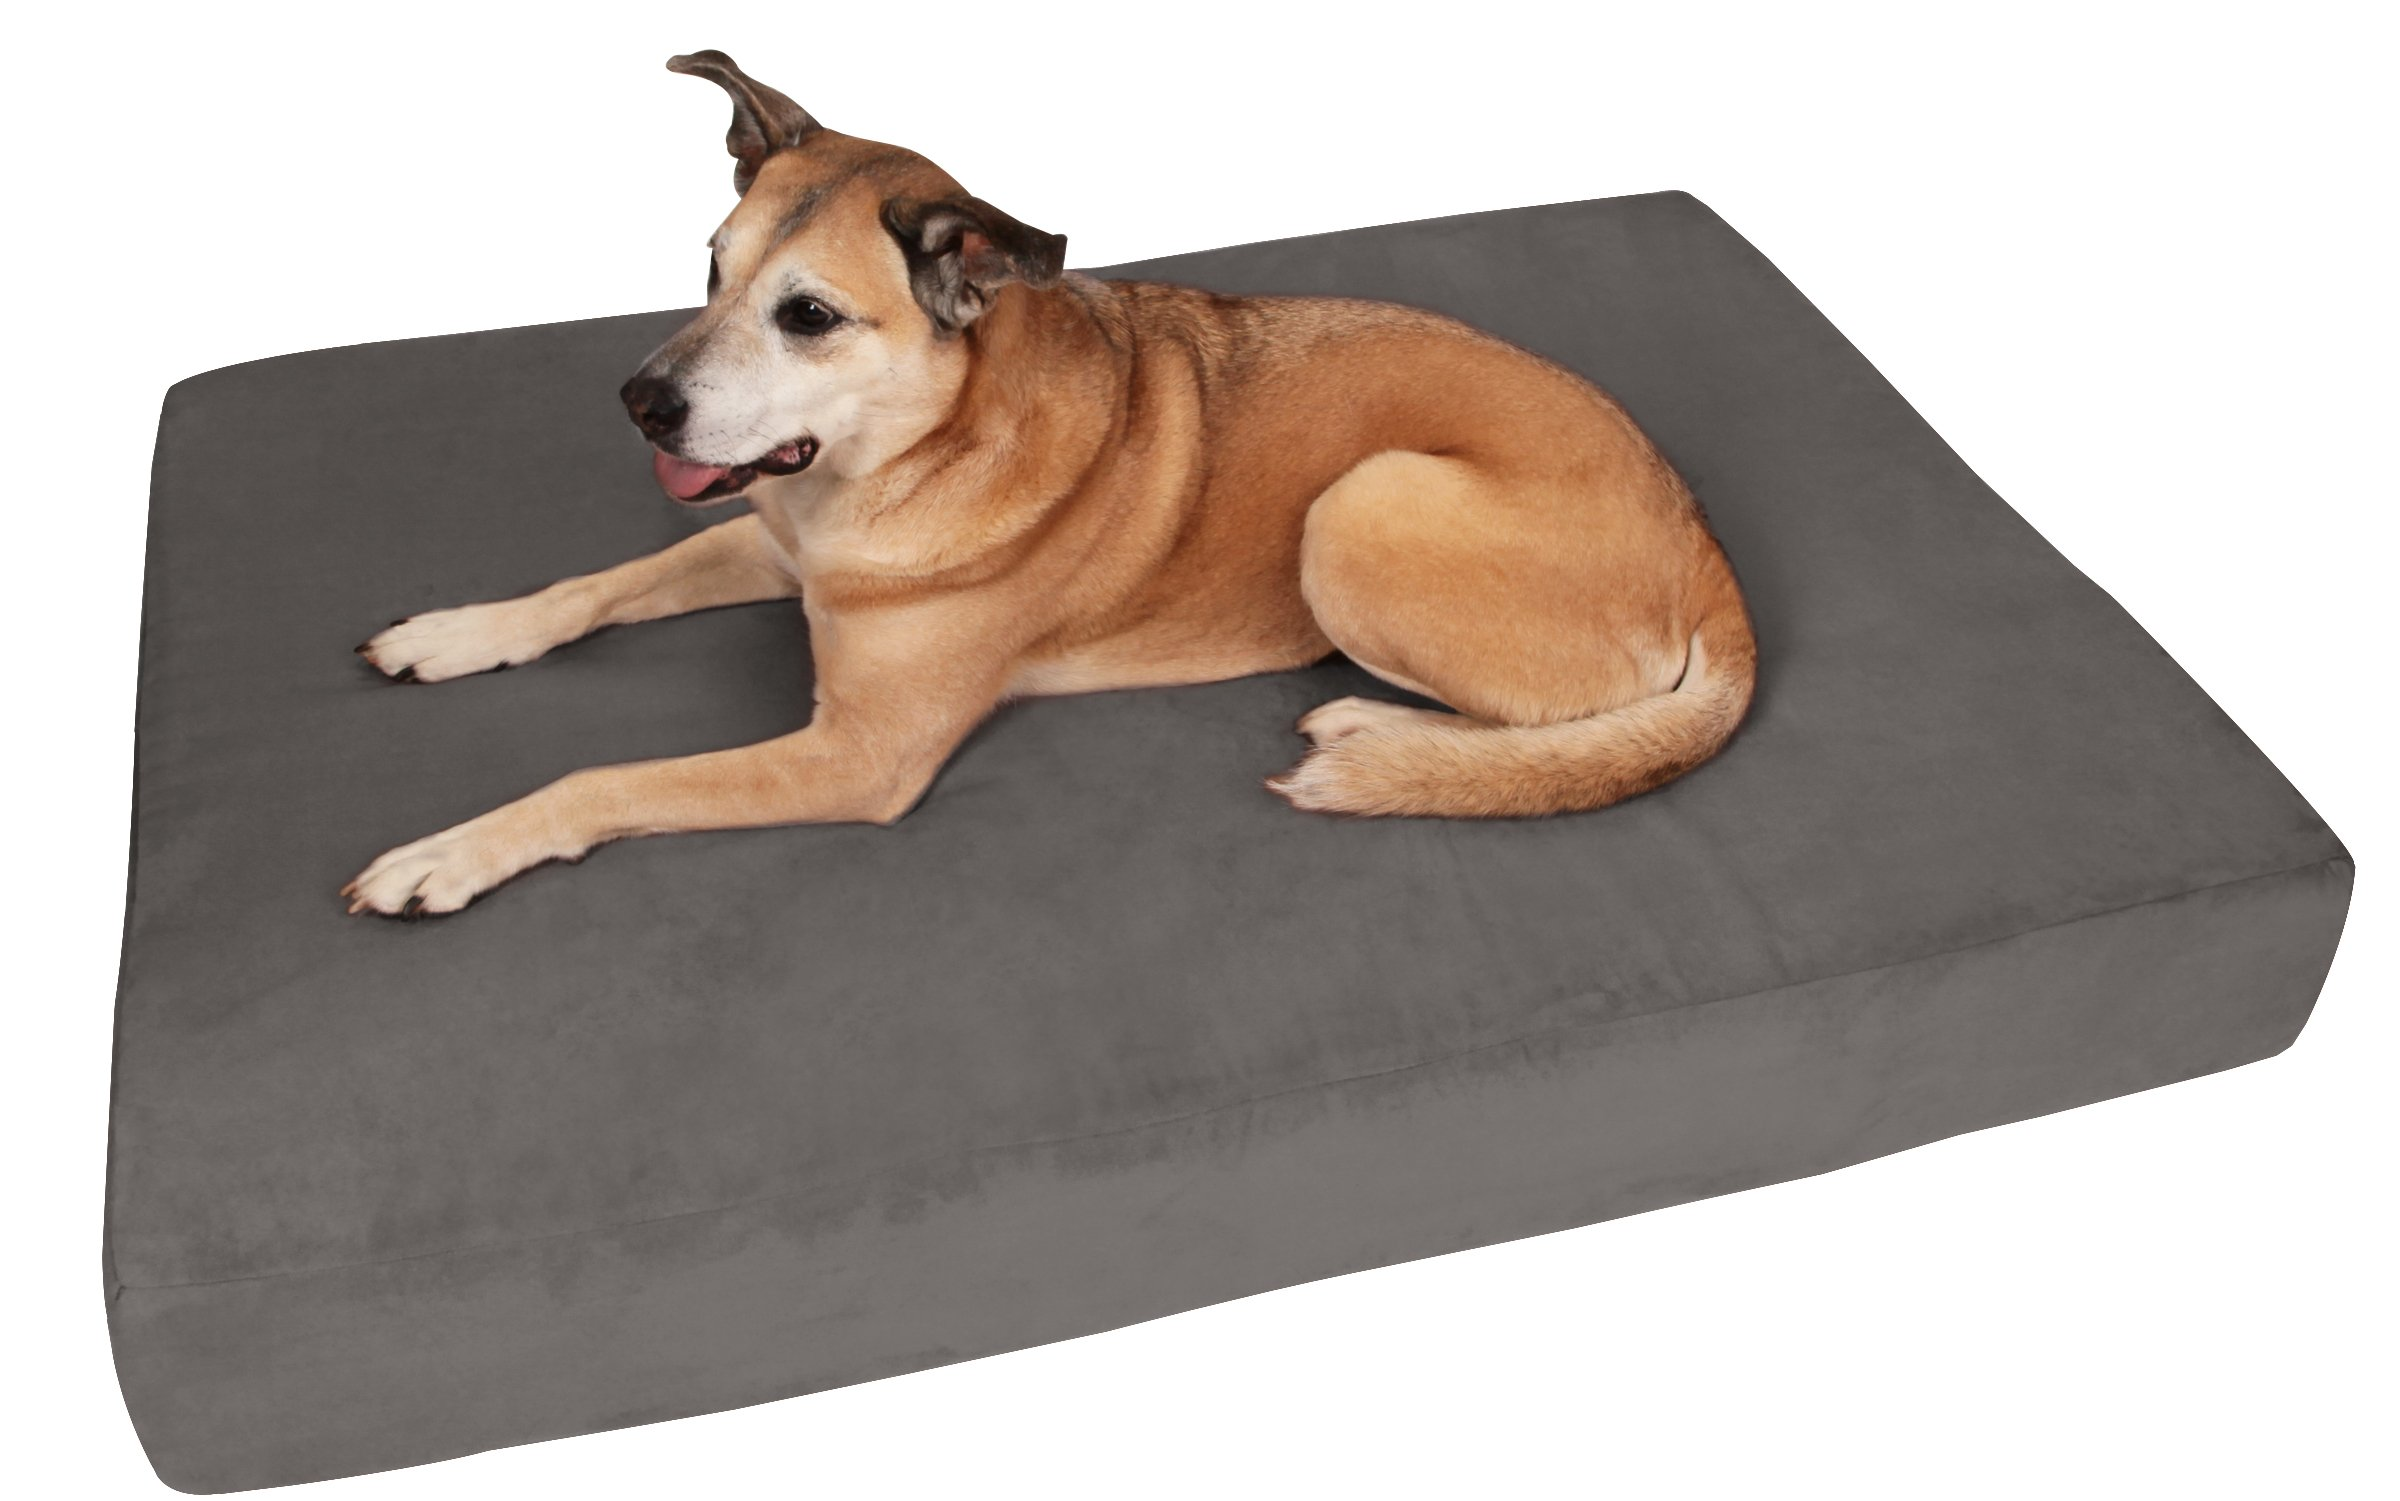 Big Barker 7'' Pillow Top Orthopedic Dog Bed - Large Size - 48 X 30 X 7 - Charcoal Gray - For Large and Extra Large Breed Dogs (Sleek Edition)